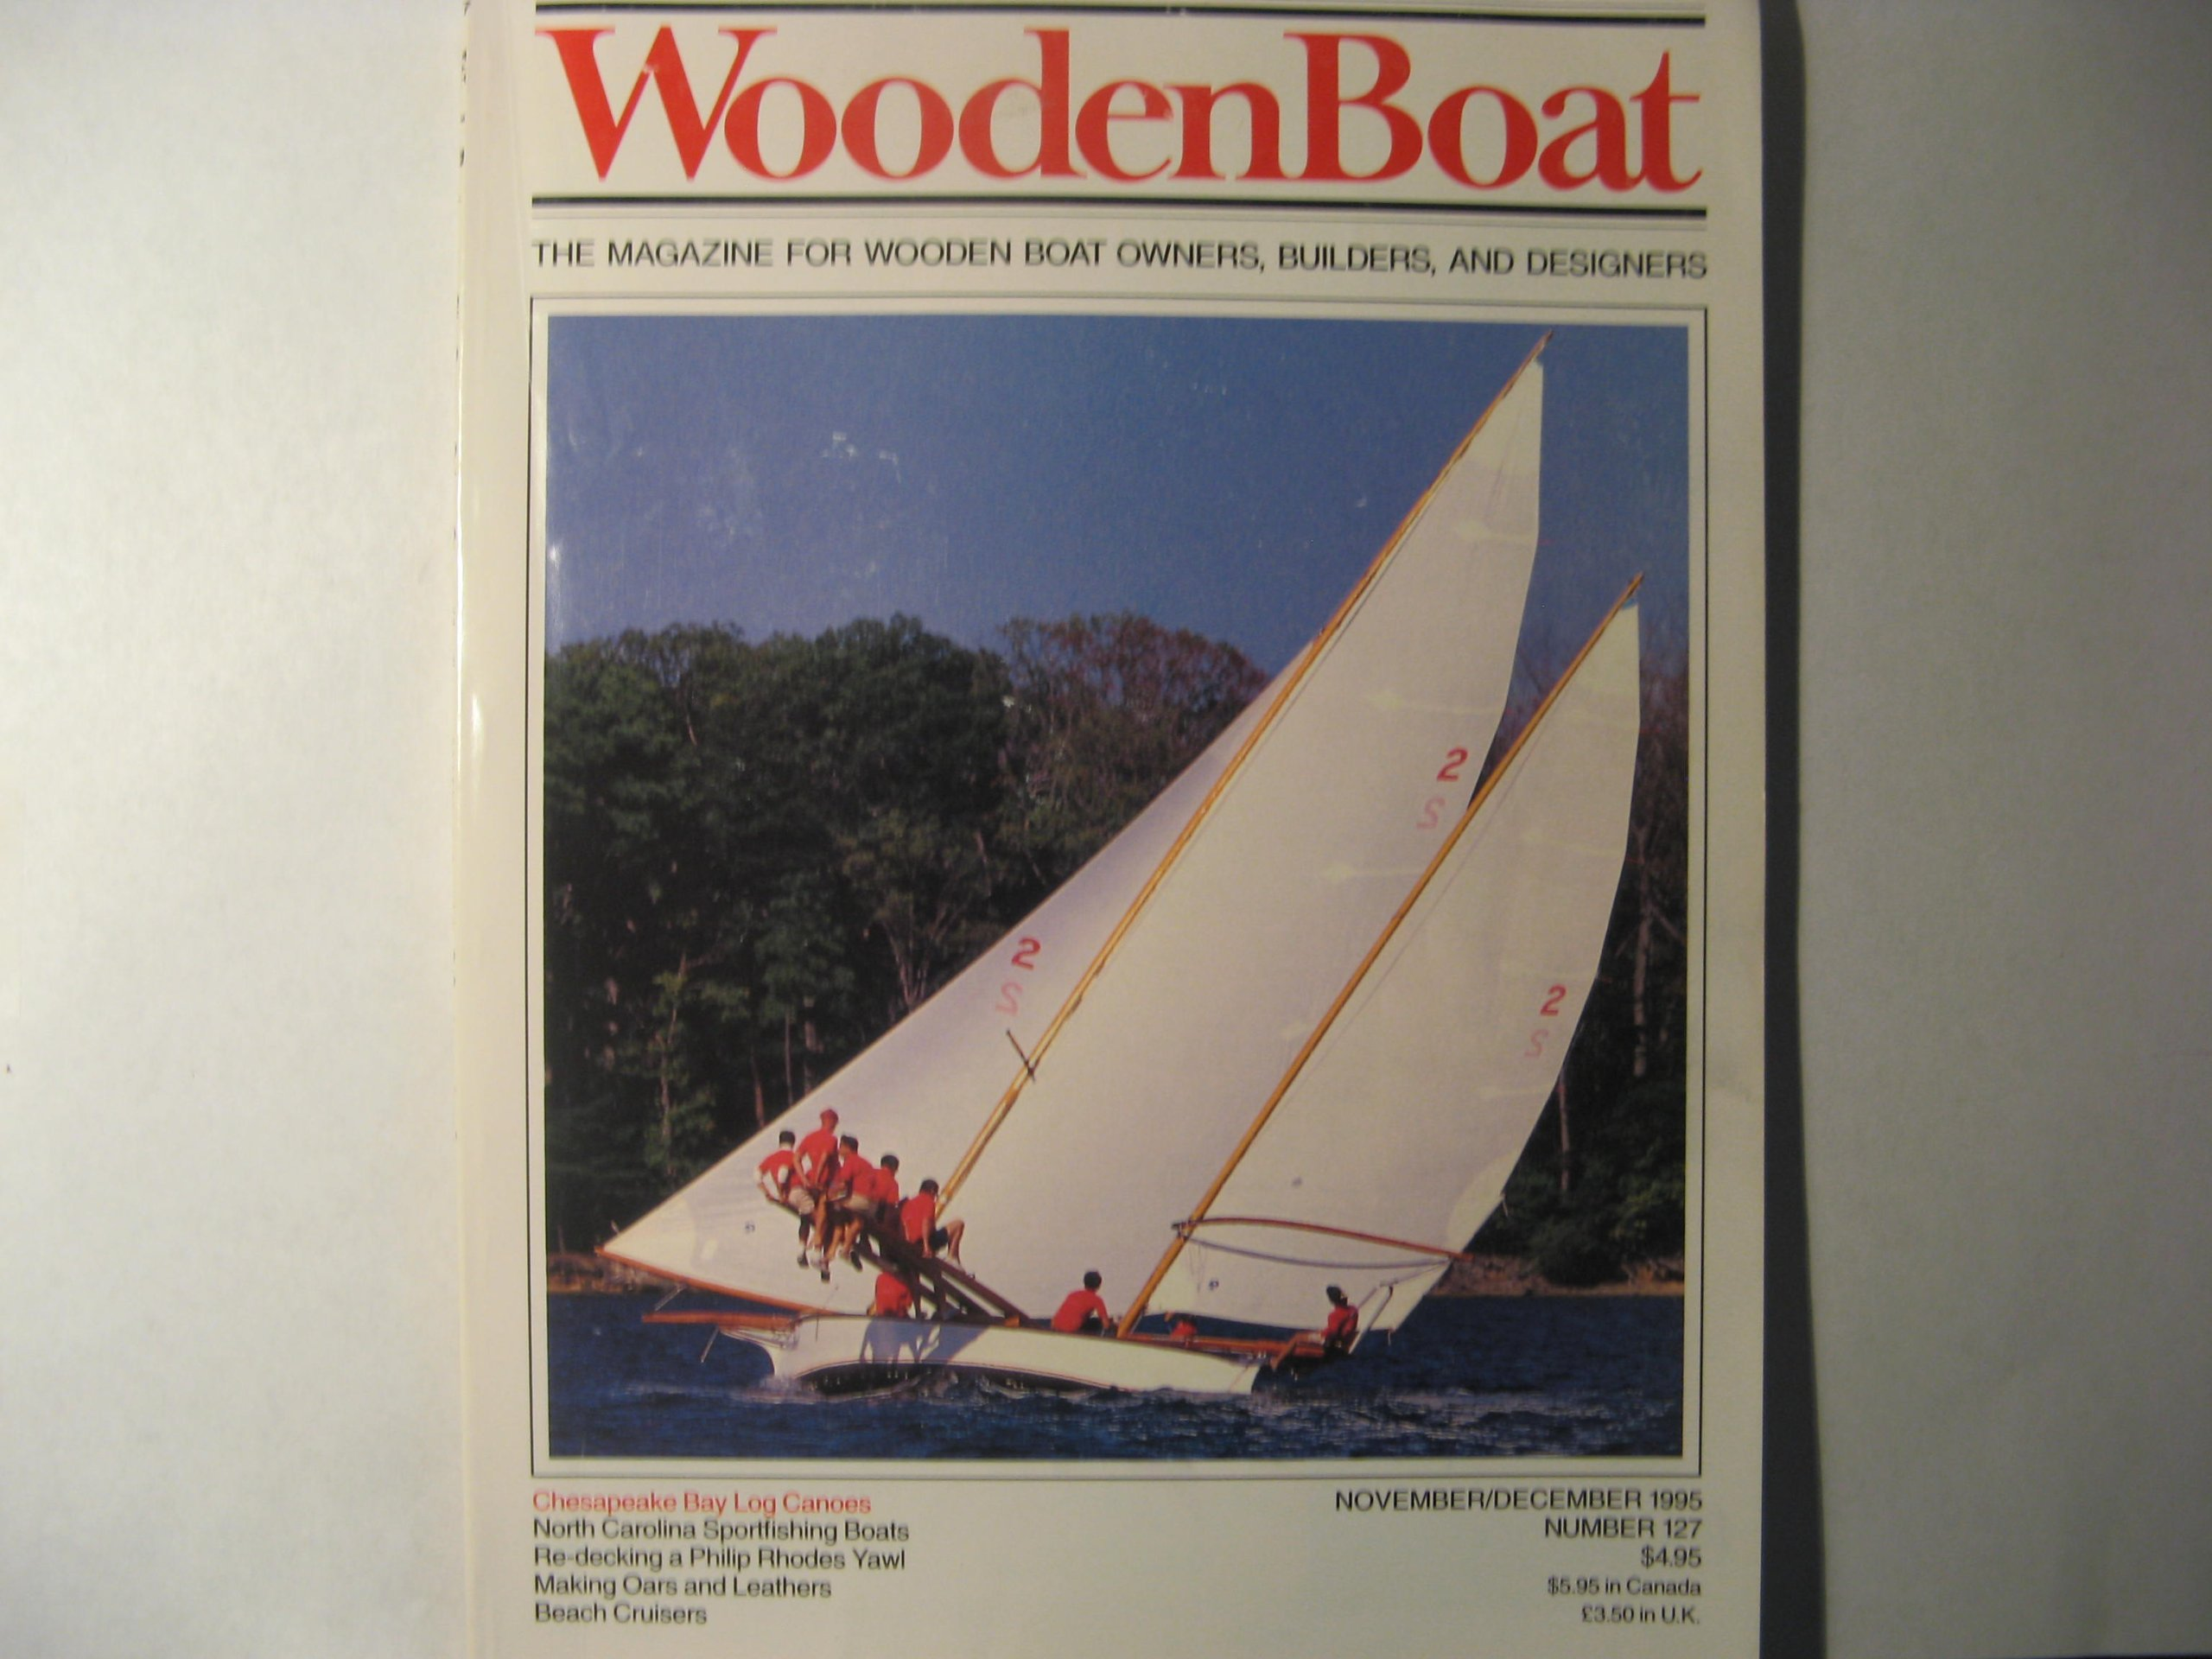 Wooden Boat. WoodenBoat. The Magazine for Wooden Boat Owners, Builders, and Designers. November December 1995. Number 127 (Bilge Pumps, Oars & Leathers, John P. Gardner, Racing Log Canoes, Beach Cruisers, The Carolina Boat Works - the sportfishing boats of Dare County, NC, Redecking COPPERHEAD - A top-notch rejuvenation for a Philip Rhodes yawl, Building Daisy - Part II)